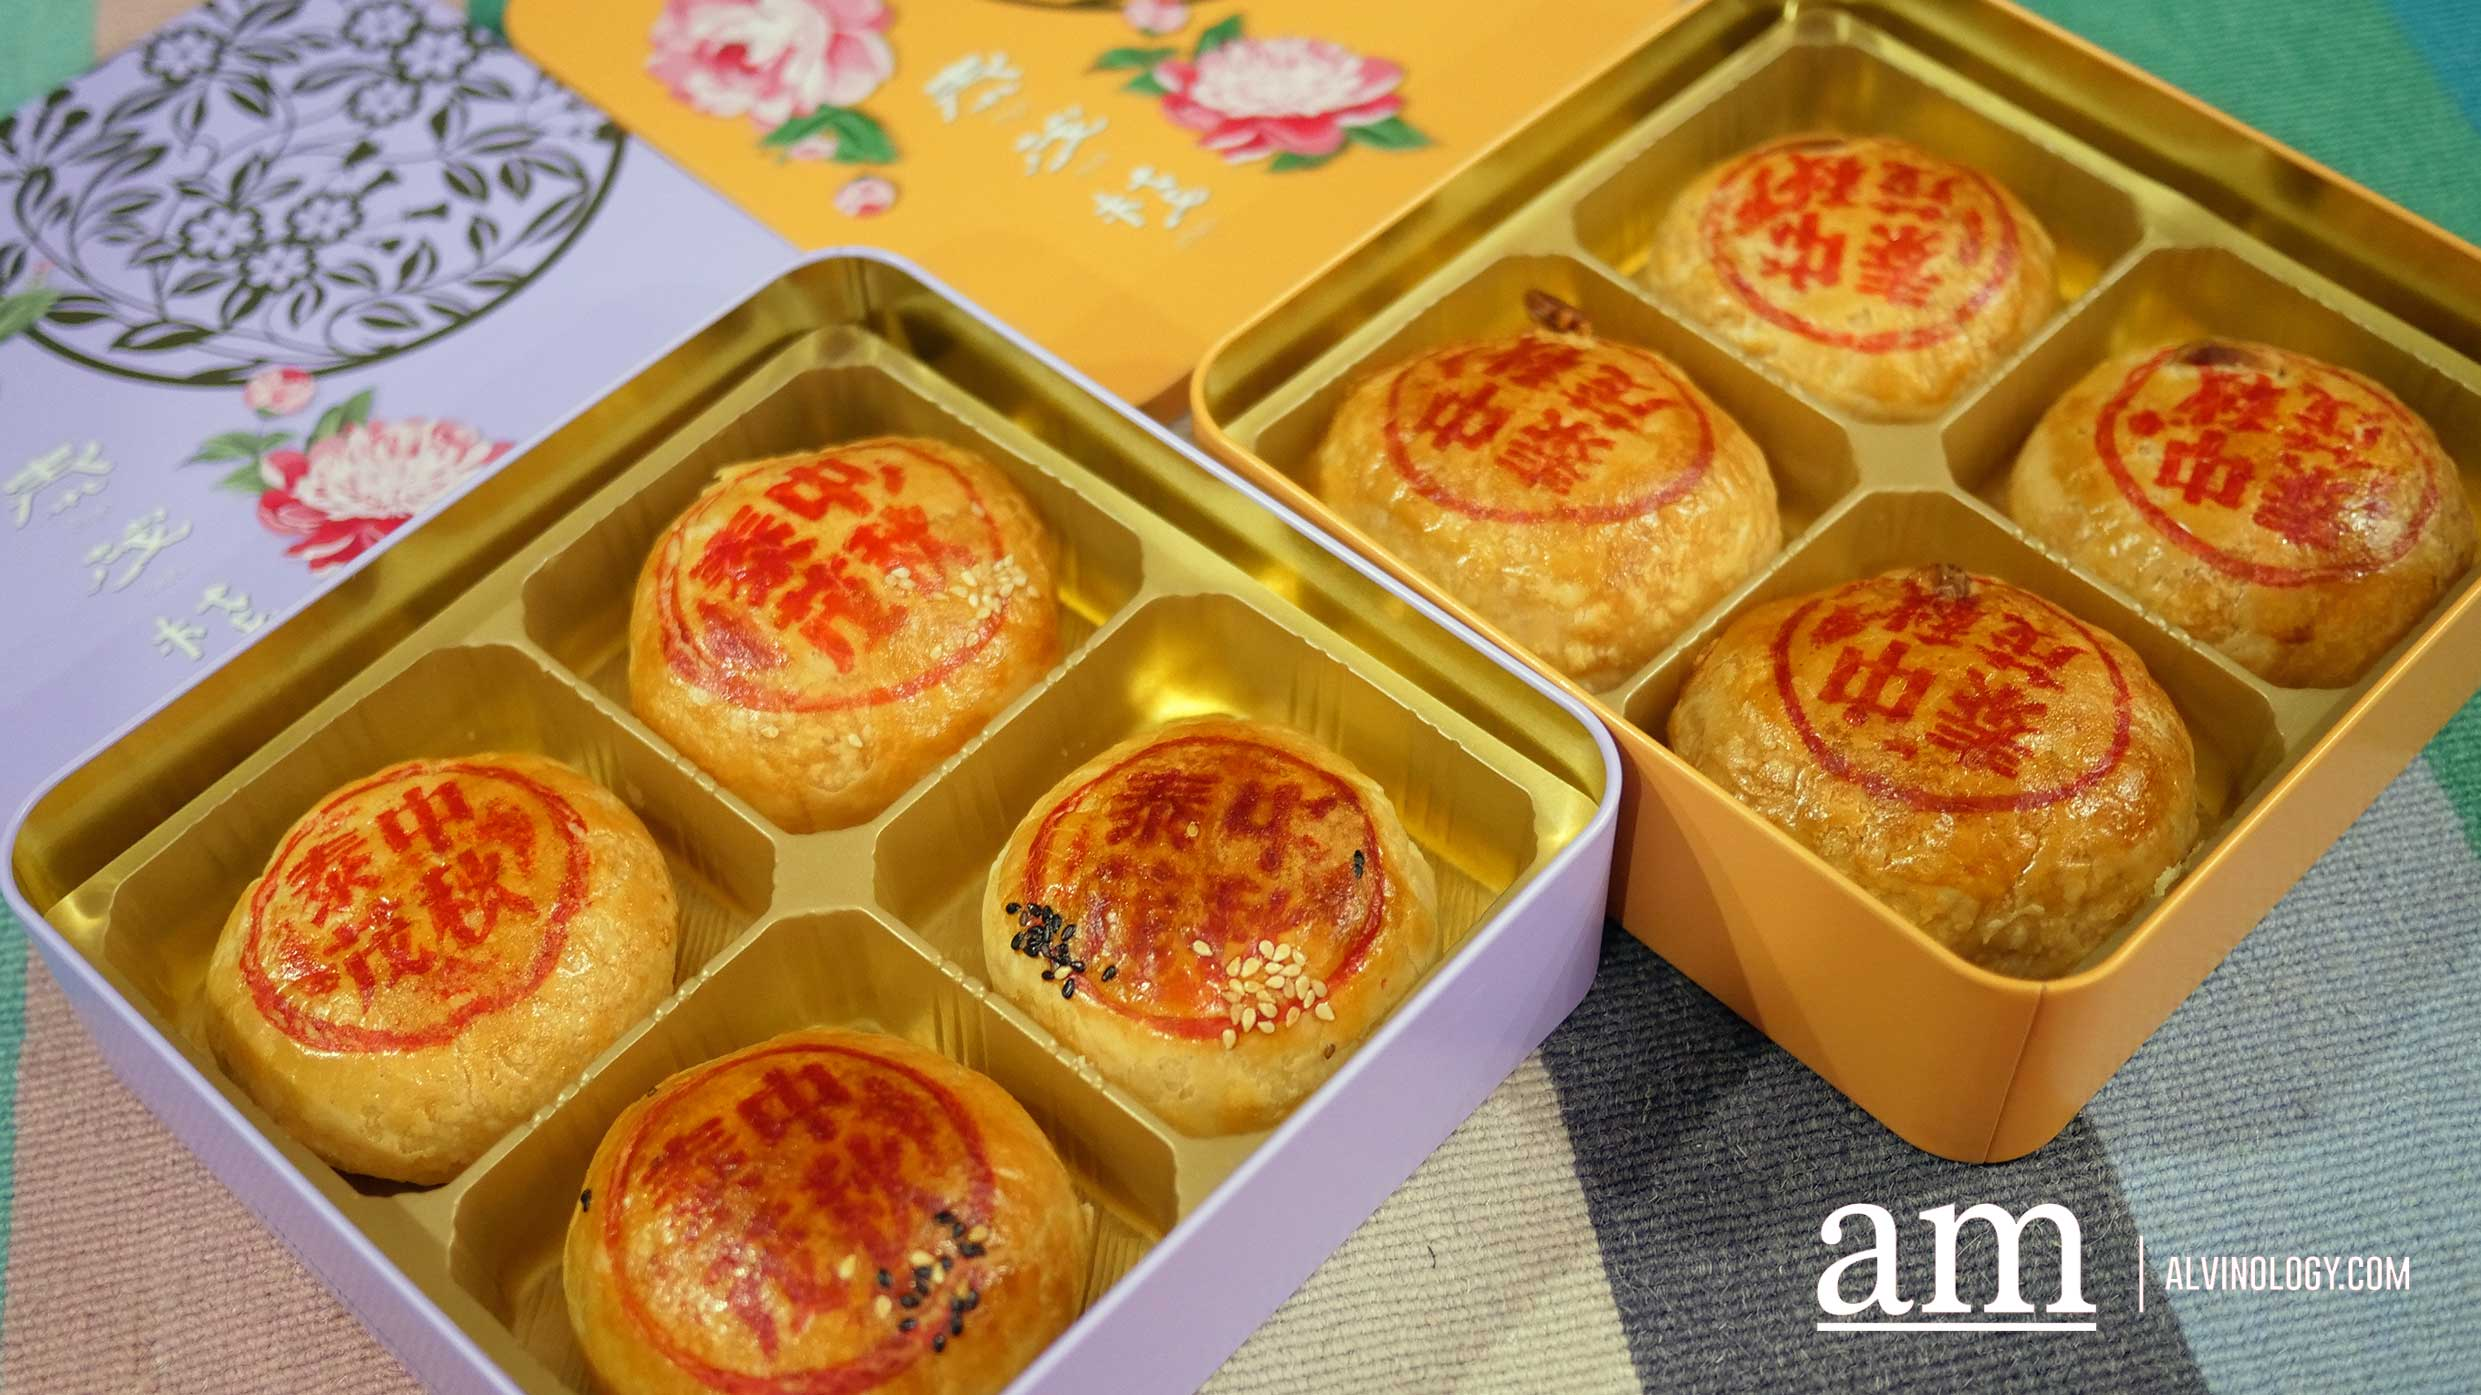 All the Fun and Unique Mooncakes for the Mid-Autumn Festival in Singapore - Alvinology